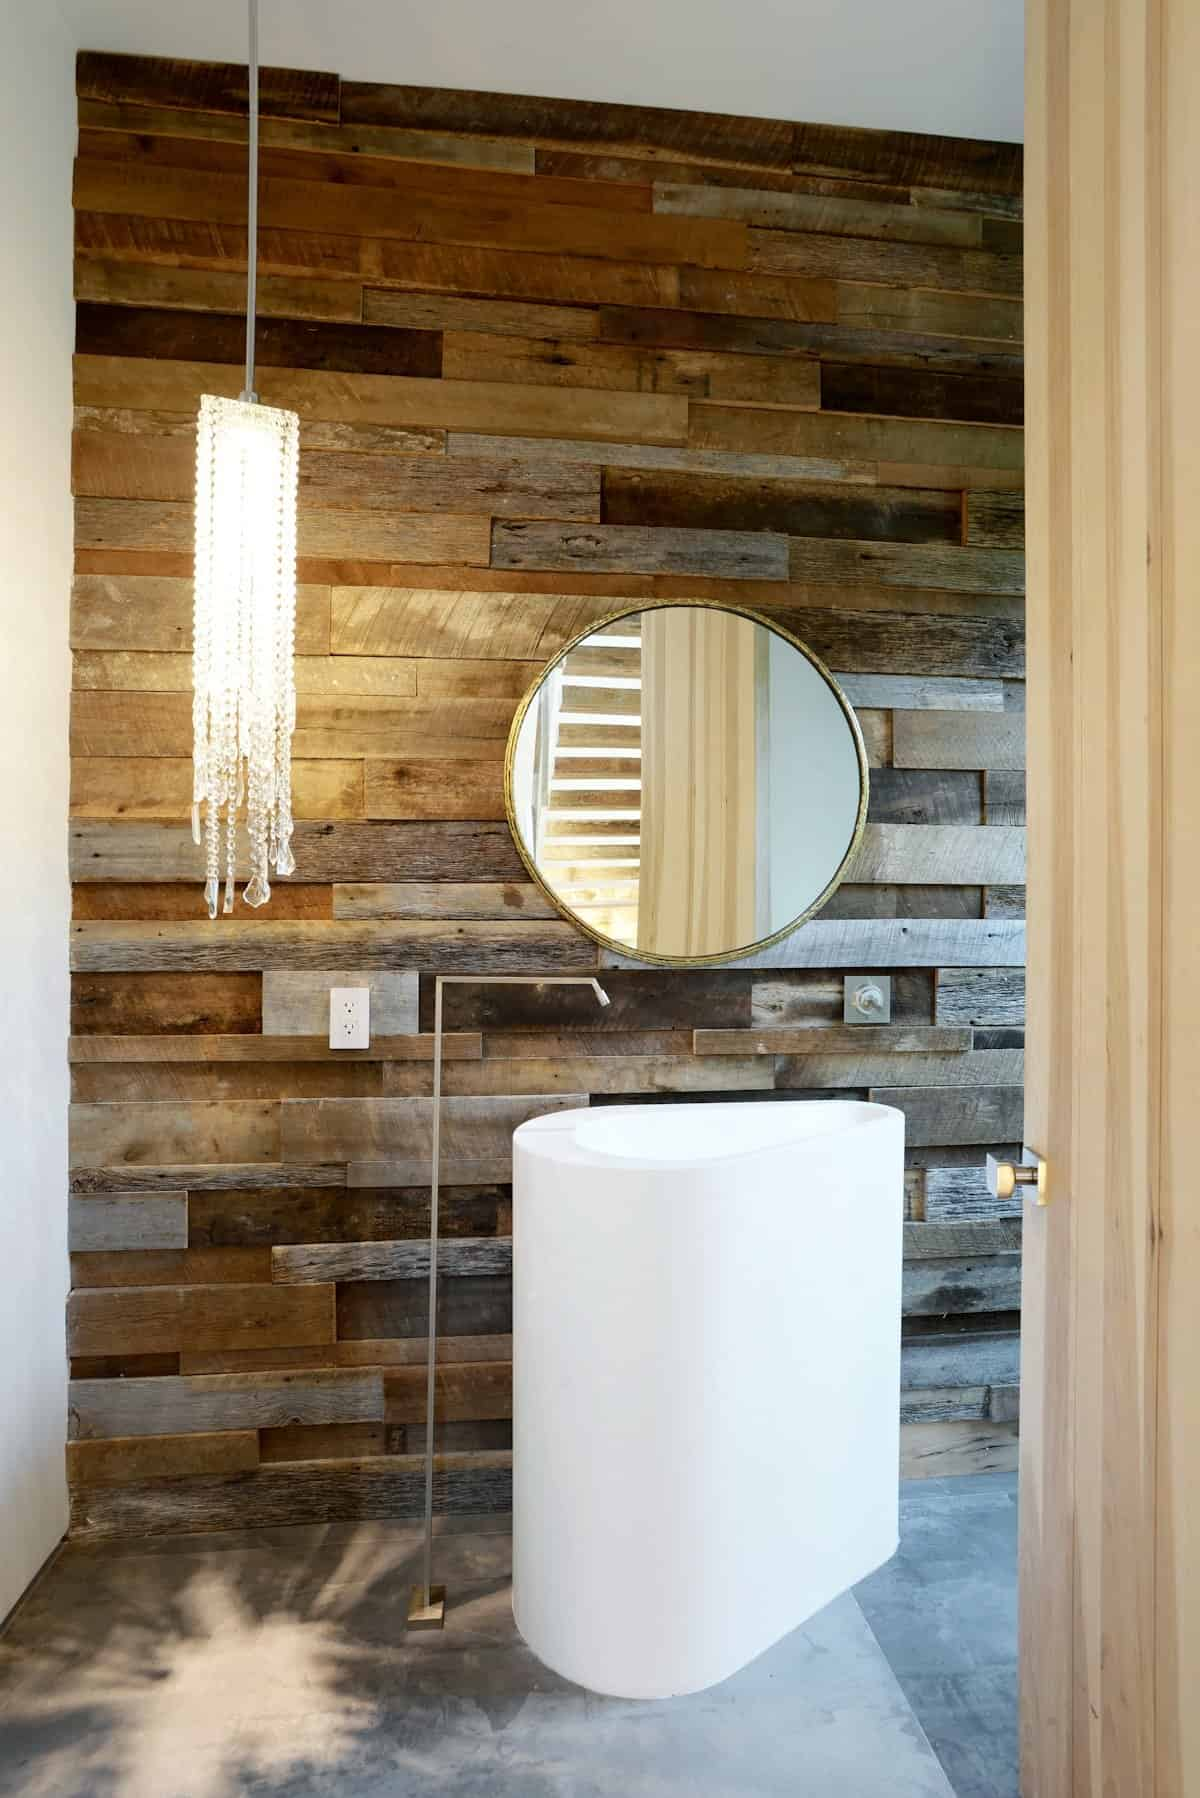 10 modern small bathroom ideas for dramatic design or for Super small bathroom ideas